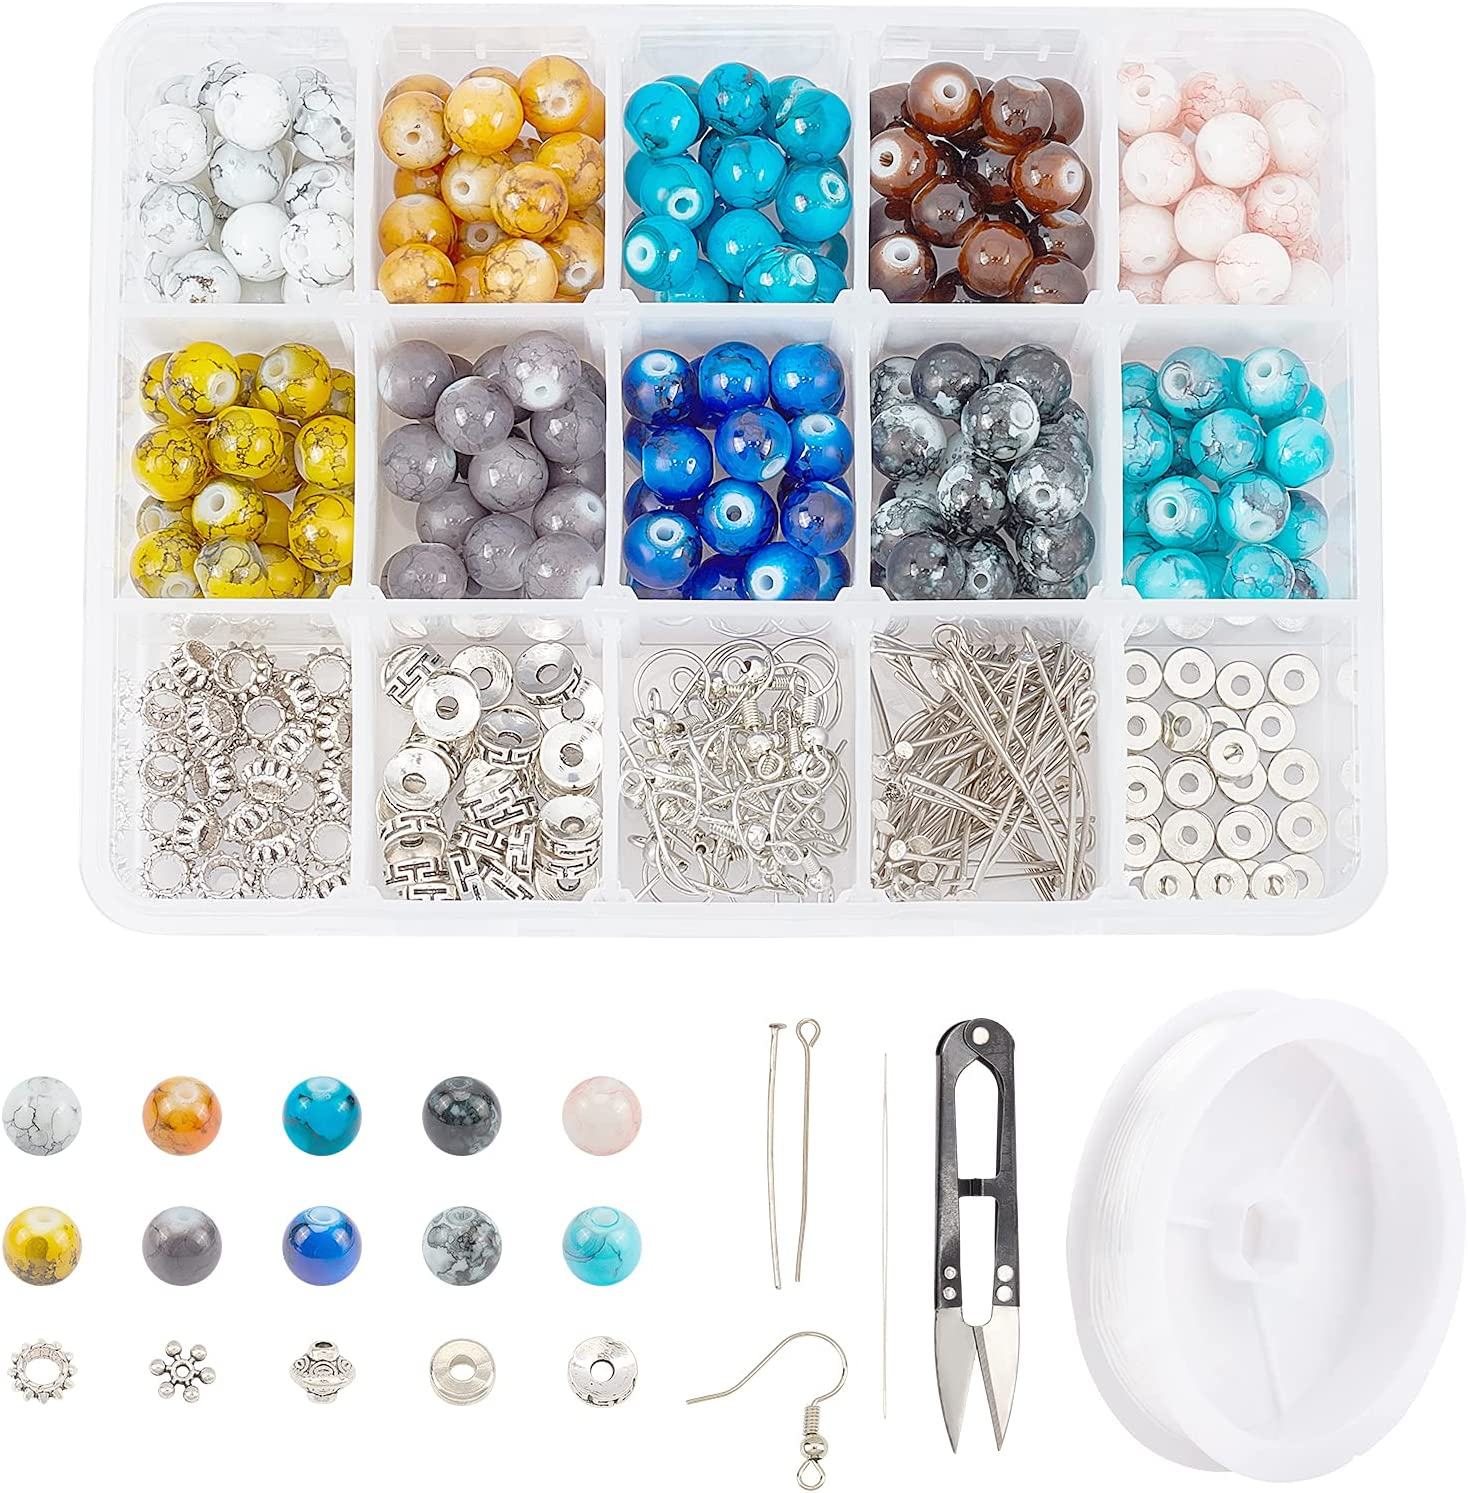 SUNNYCLUE 1 Box 200Pcs 10 Colors 8mm Glass Outlet sale feature Beads Discount is also underway Makin Jewellery